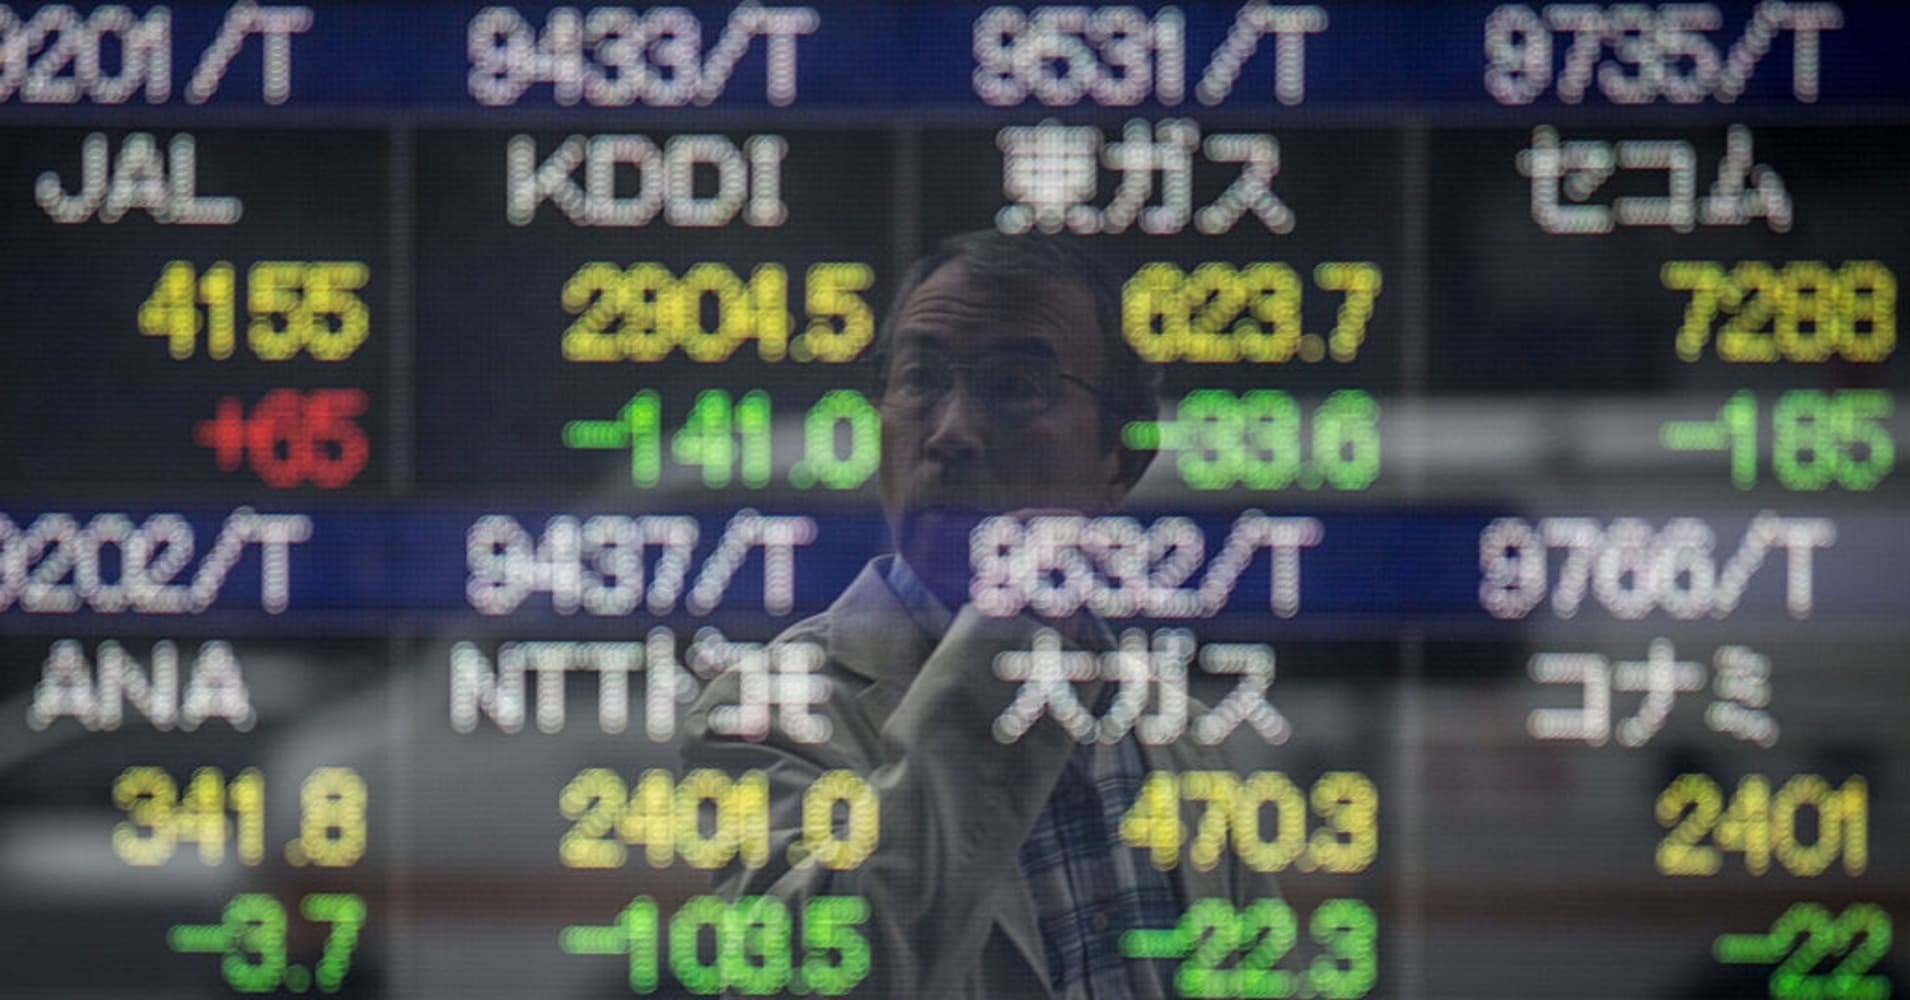 JP Morgan says Asian shares will go up as risks come down